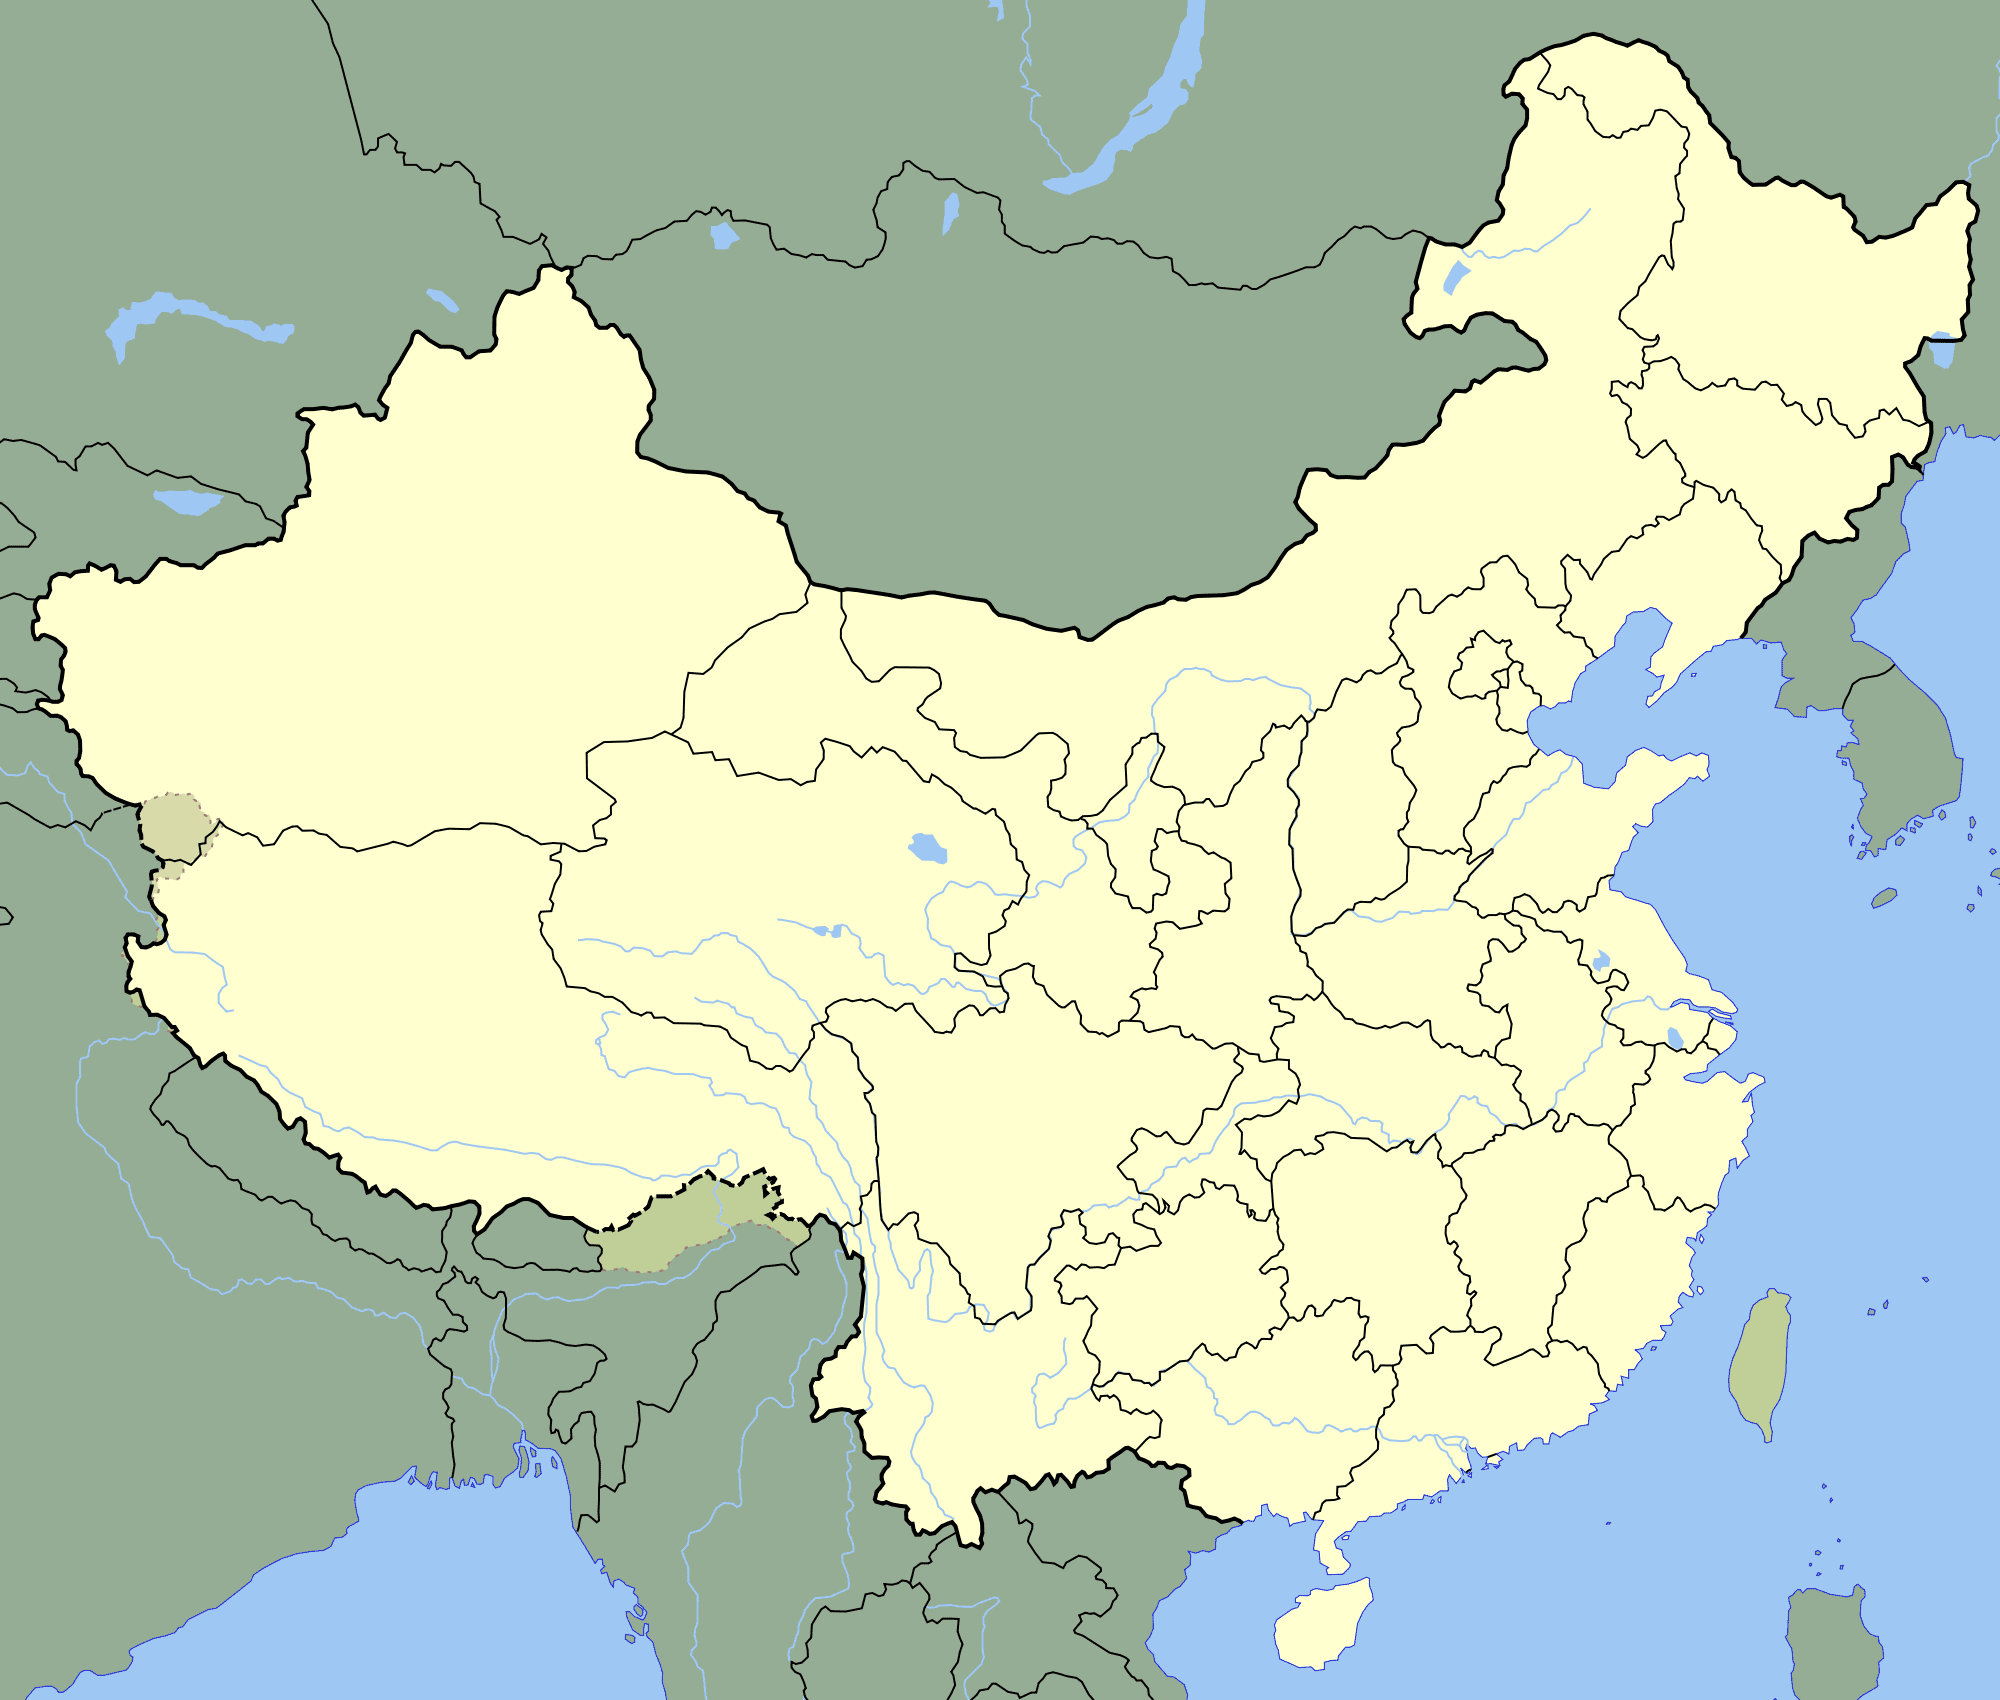 China Blank Map large map